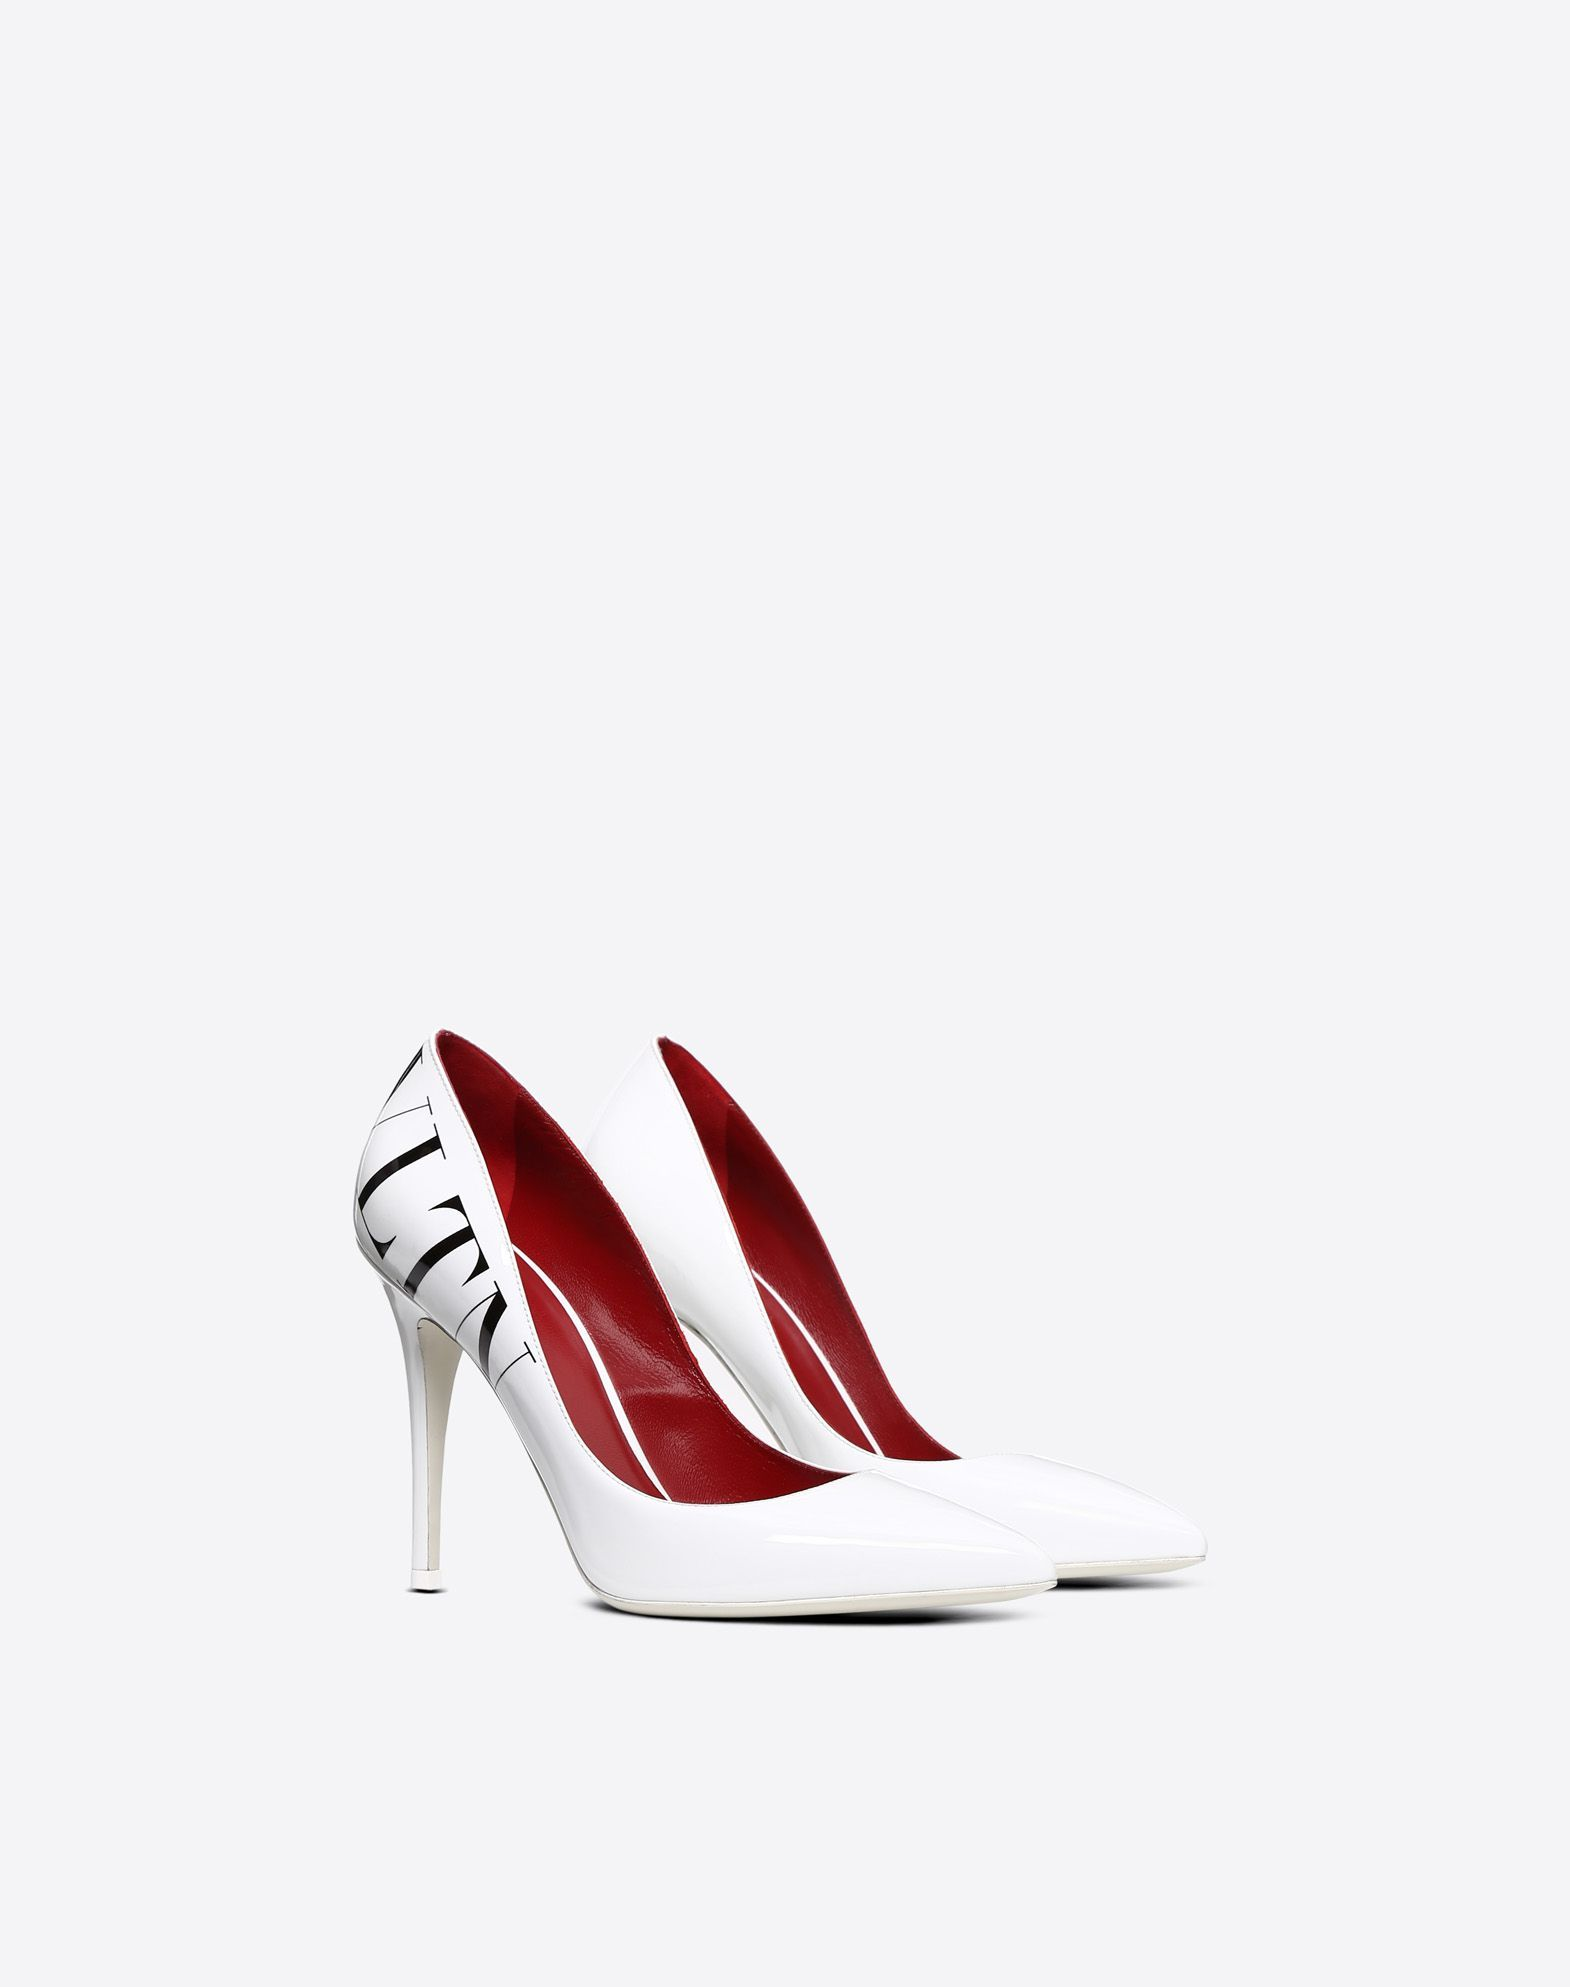 3dba958dac222 VLTN Patent Pump 105mm for Woman | Valentino Online Boutique ...